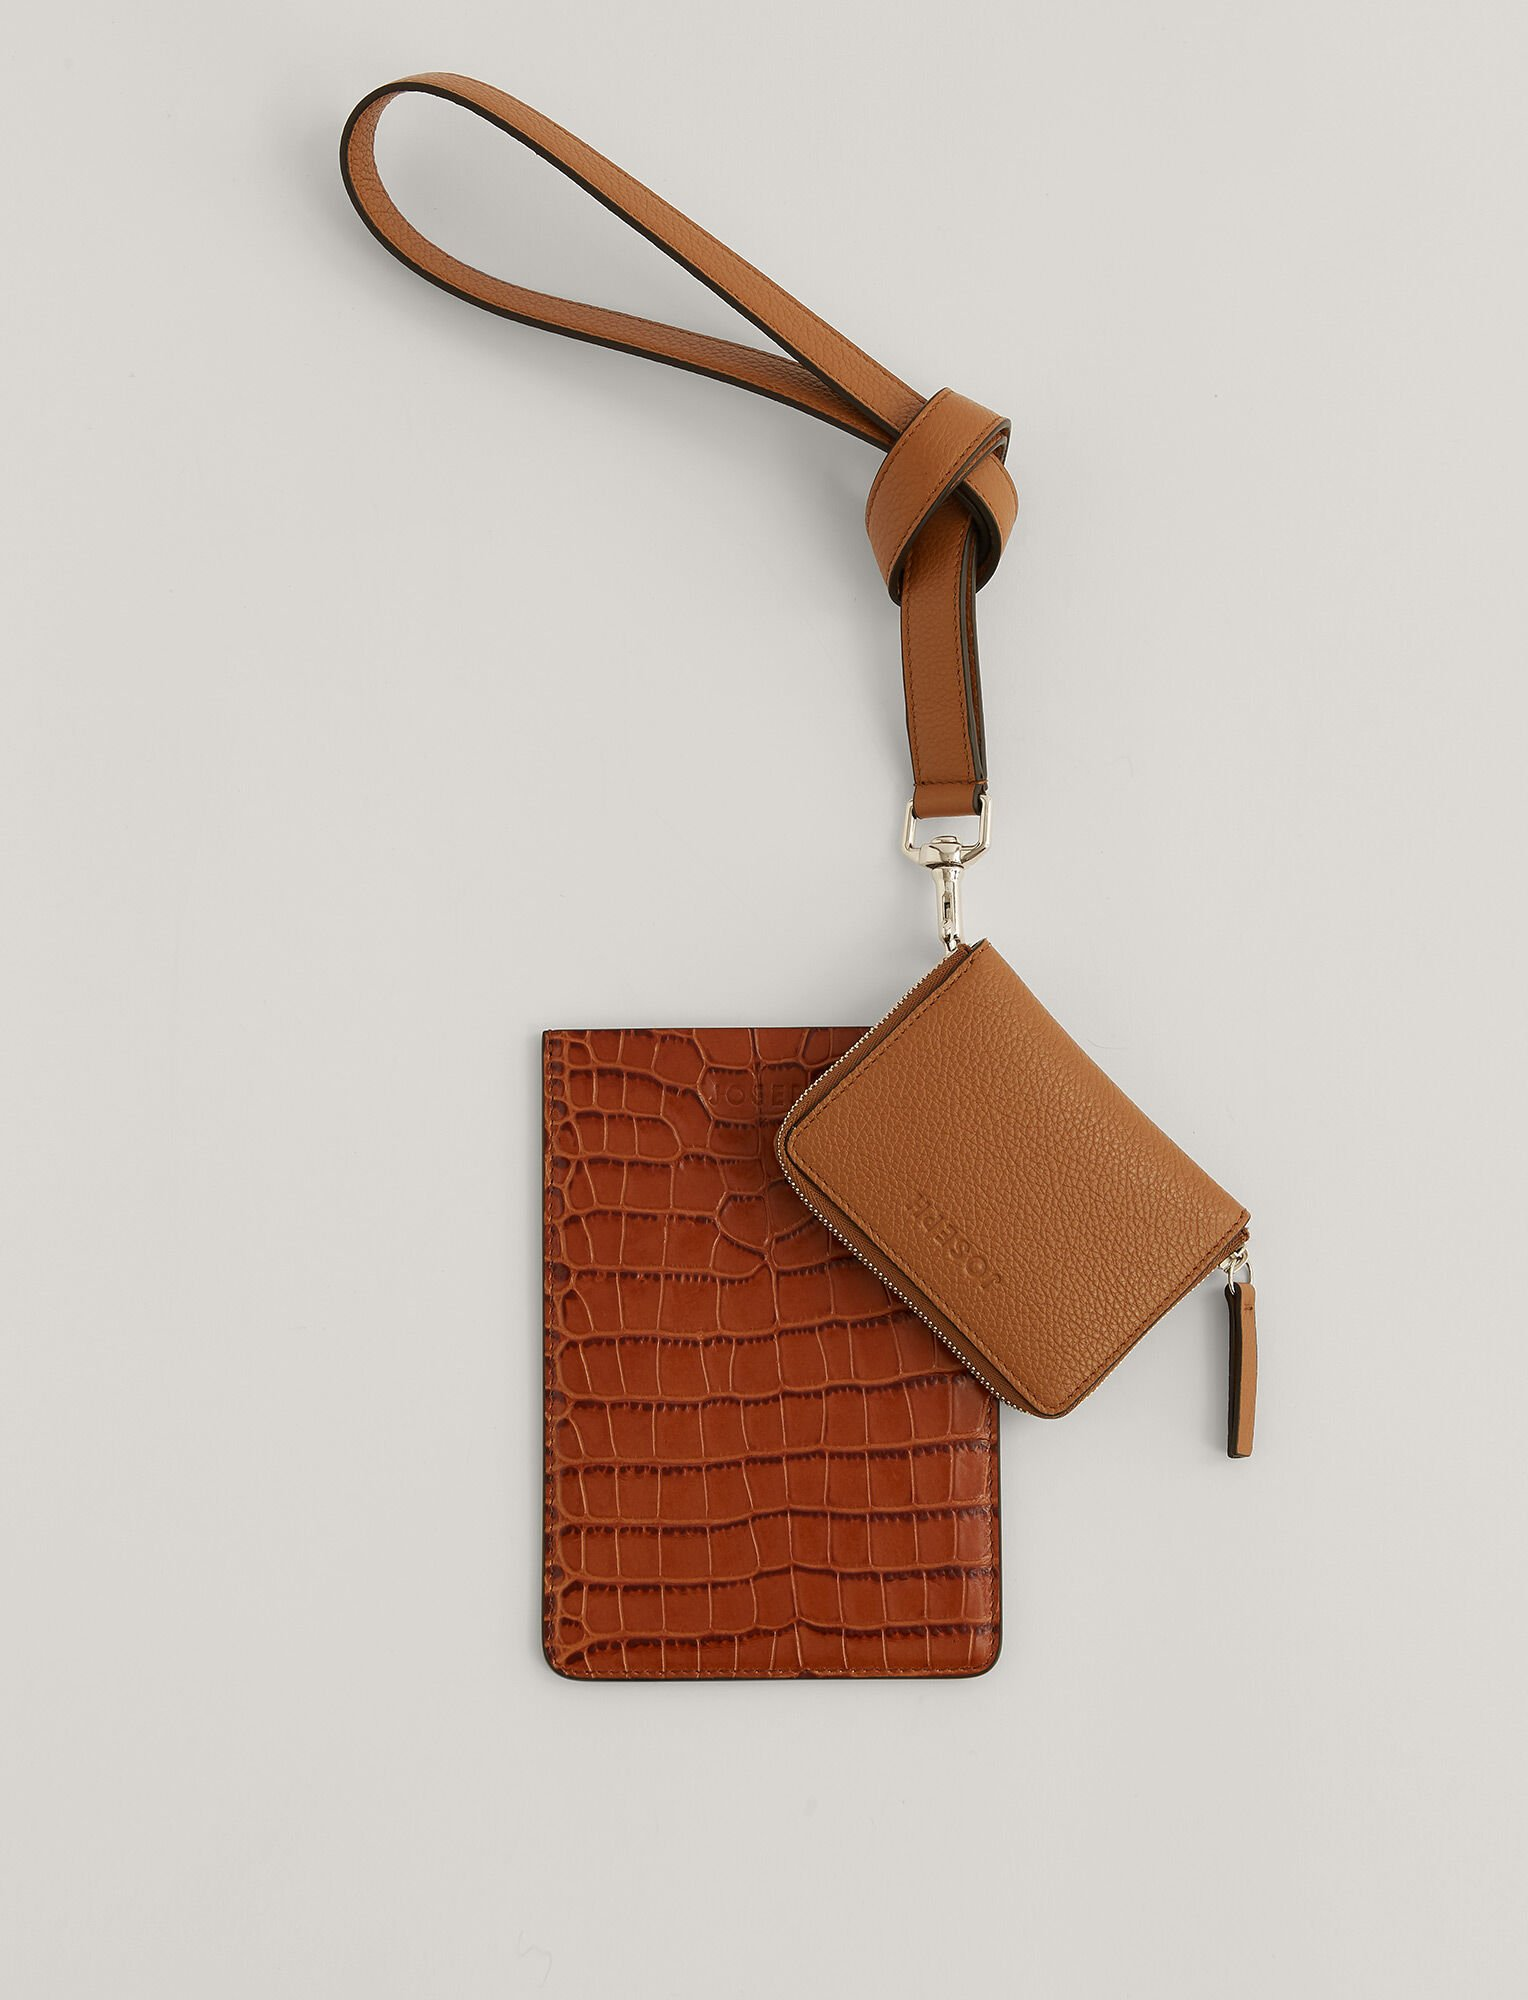 Joseph, Multi Pocket Leather Bag, in Cognac